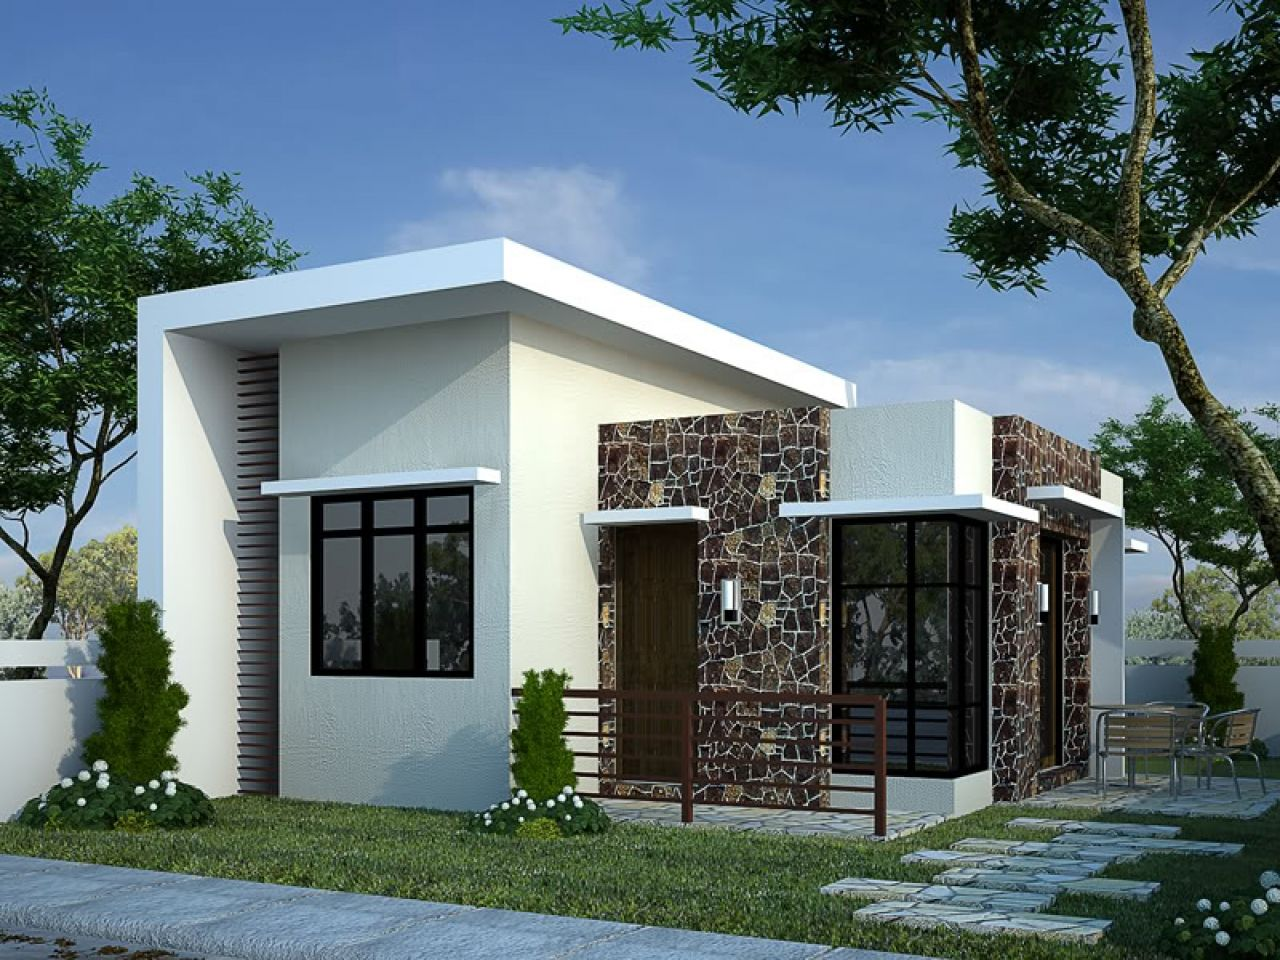 Vintage Cottage House Plans Modernhouseplans Philippines House Design Modern Bungalow House Plans Bungalow Design